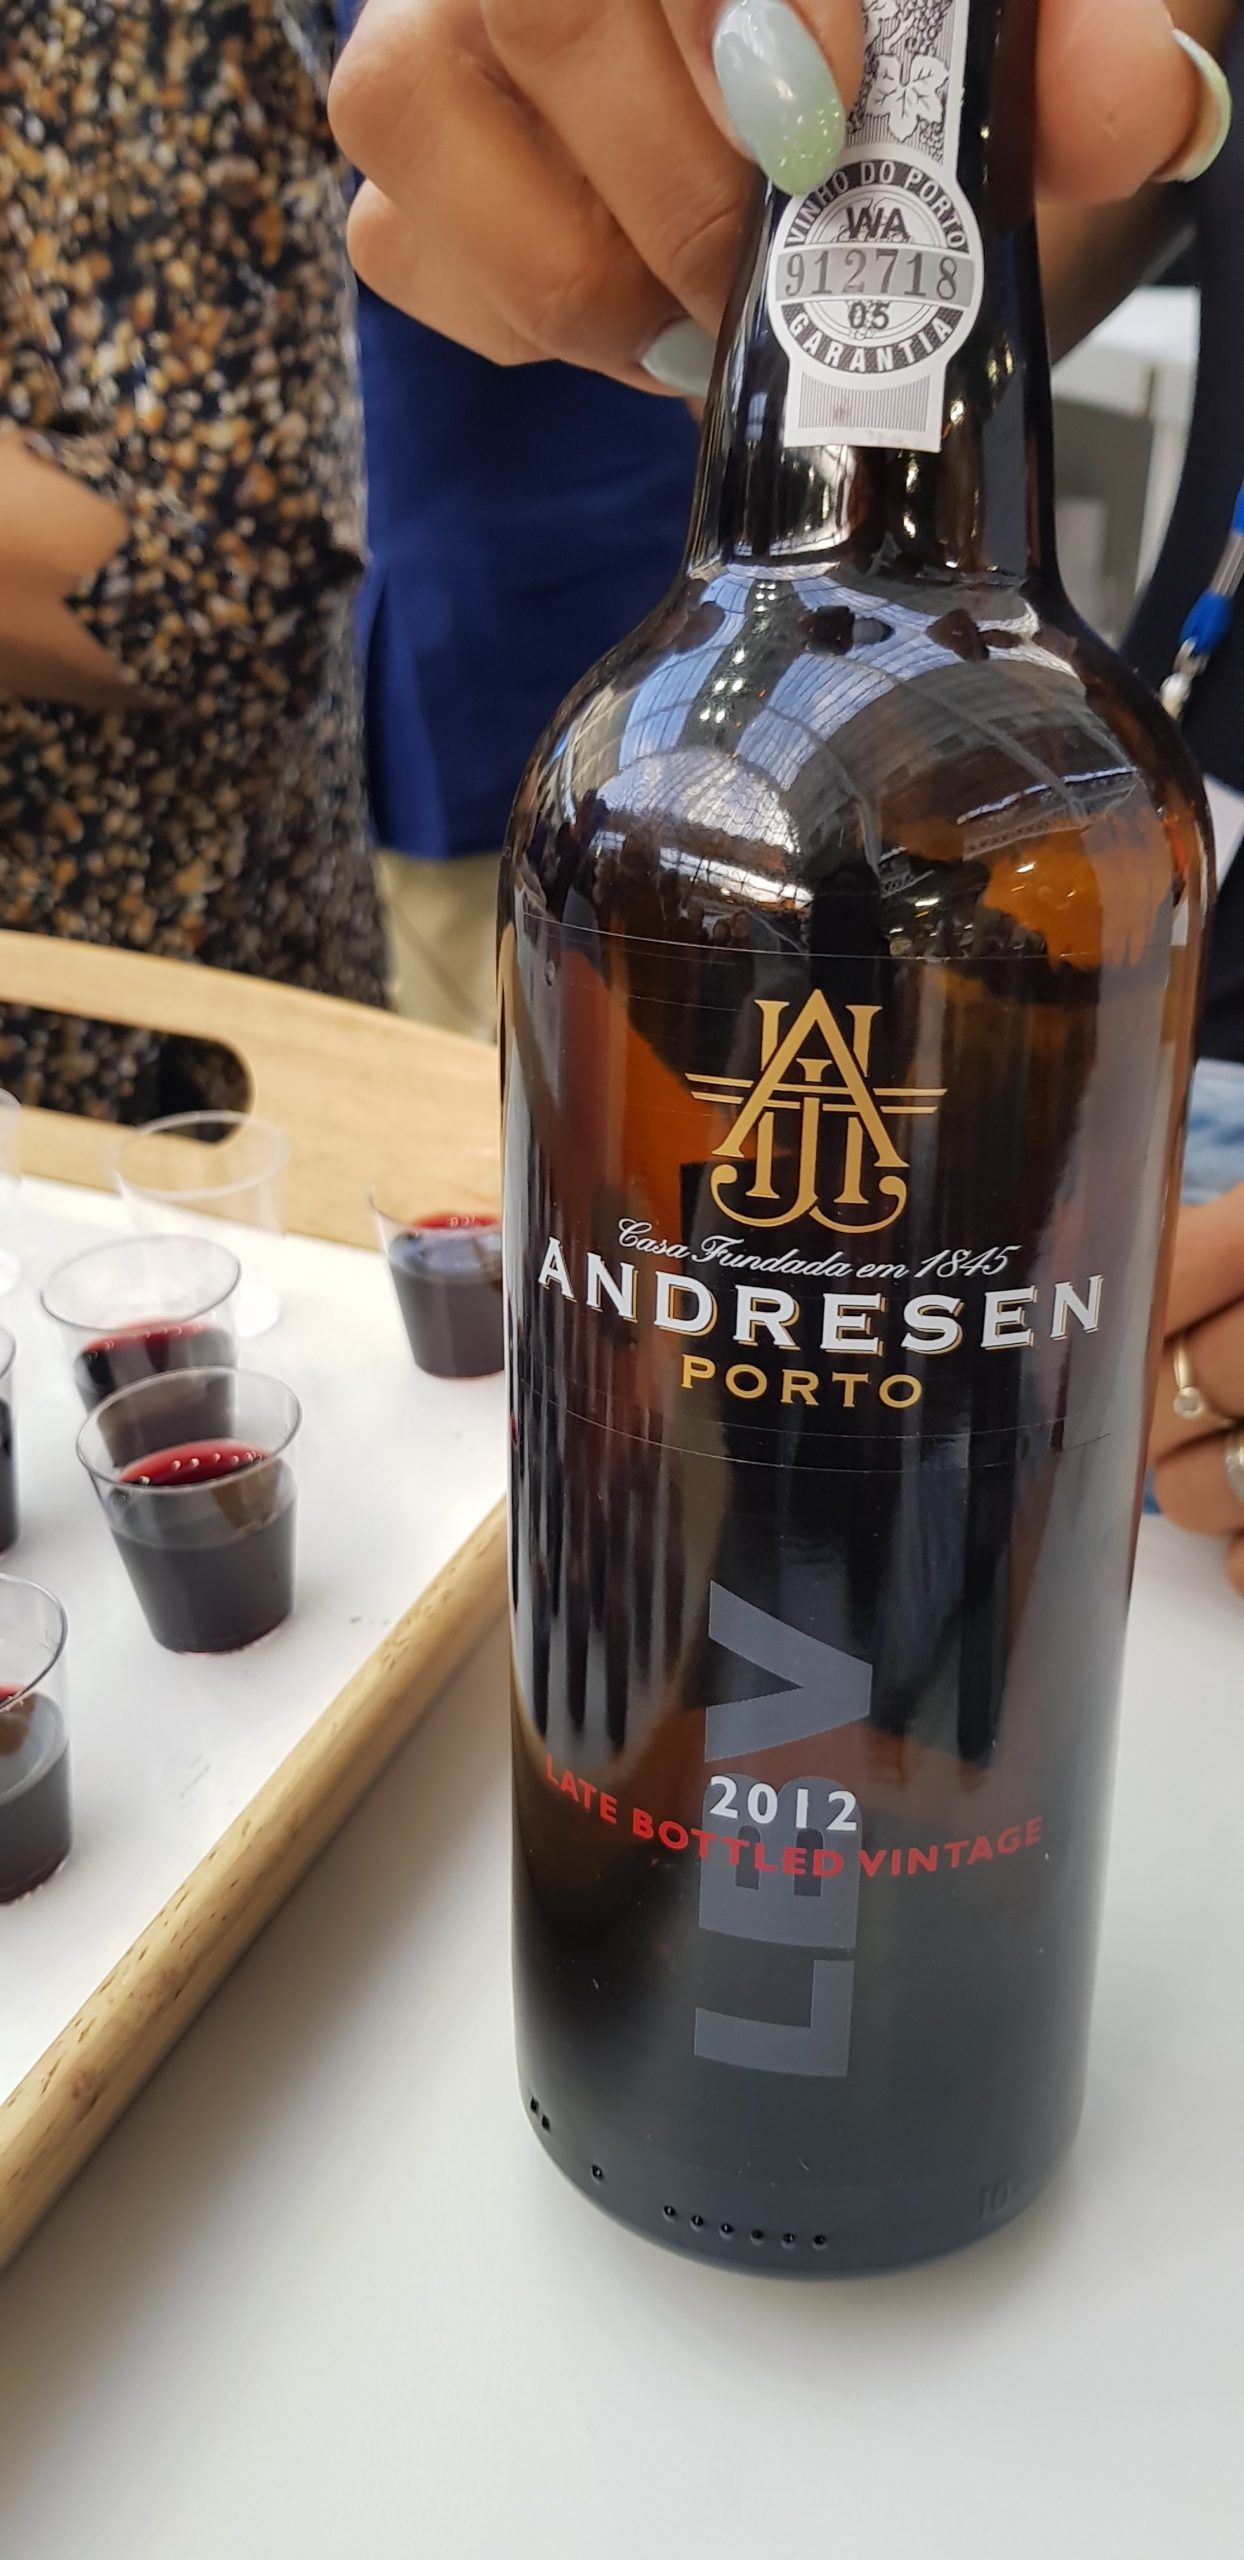 Port samples at wine tasting at The Destinations Show